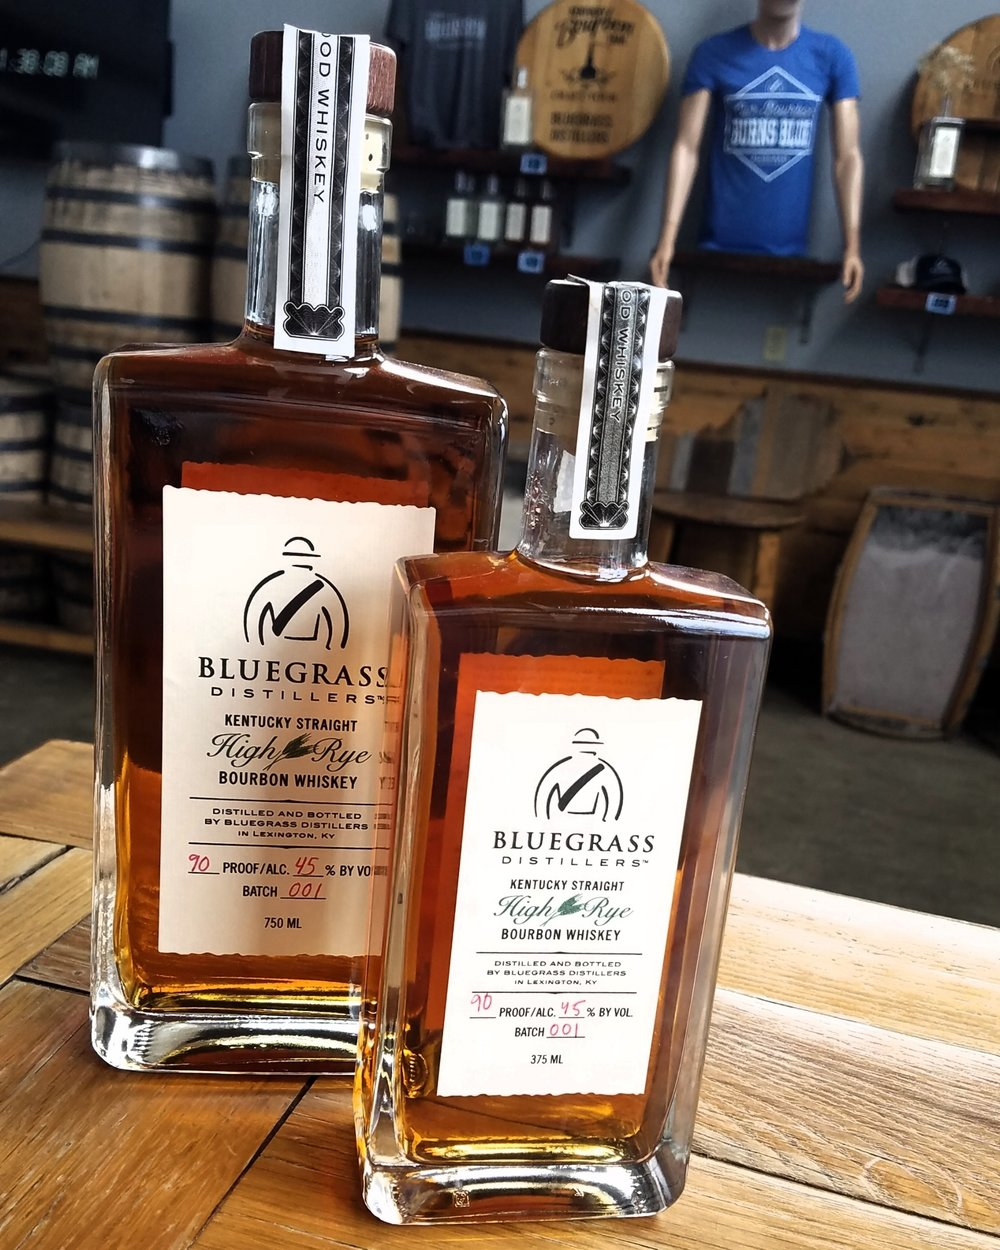 Kentucky StraightHigh rye bourbon - Our flagship bourbon is bottled at 90 Proof and made with 75% yellow corn, 15% rye, and 10% malted barley. It has aromatic notes of butterscotch and spices with a peppery, spiced flavor. Barrel-aged for at least 2 years.Also available in Barrel Drawn